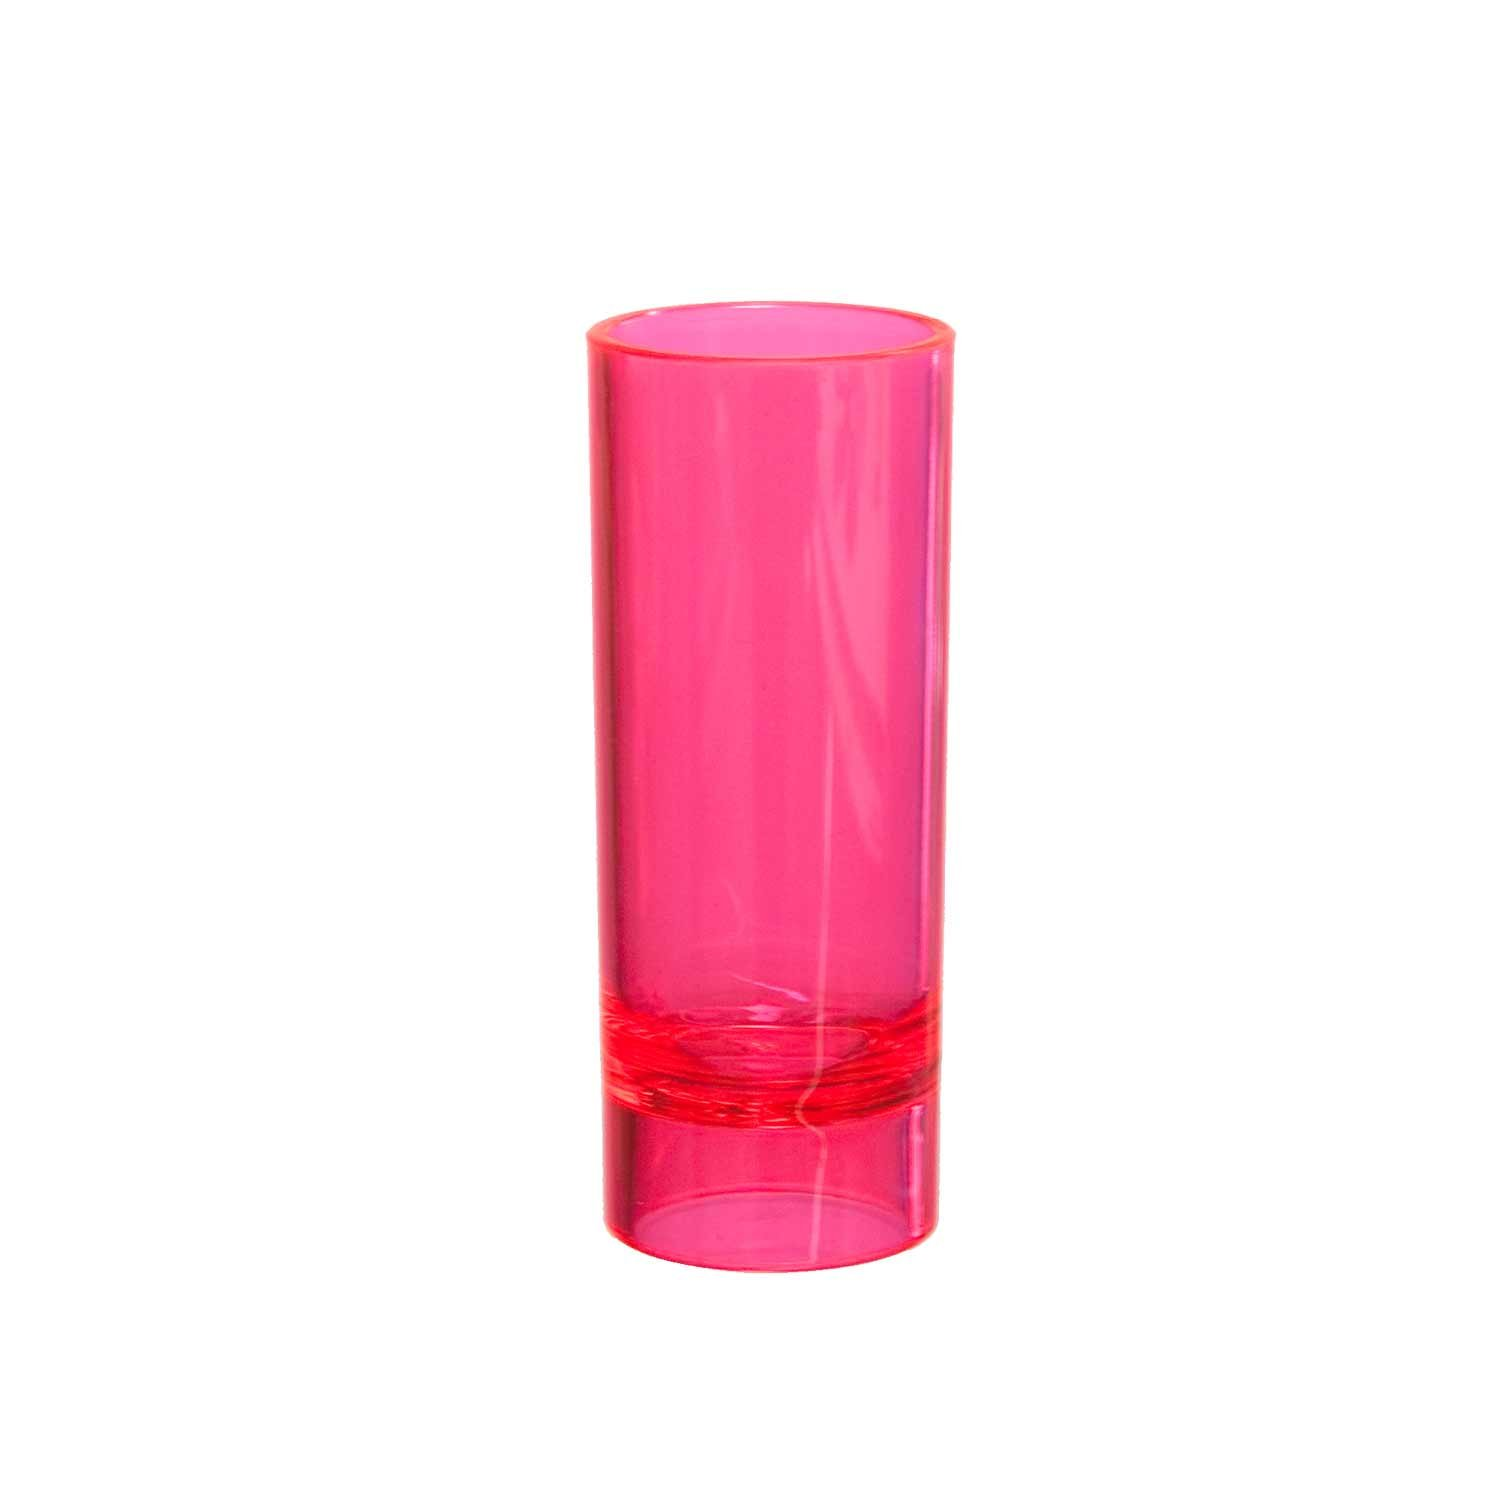 Party Essentials Hard Plastic 2-Ounce Shot/Shooter Glasses, Neon Pink, 10 Count by Party Essentials